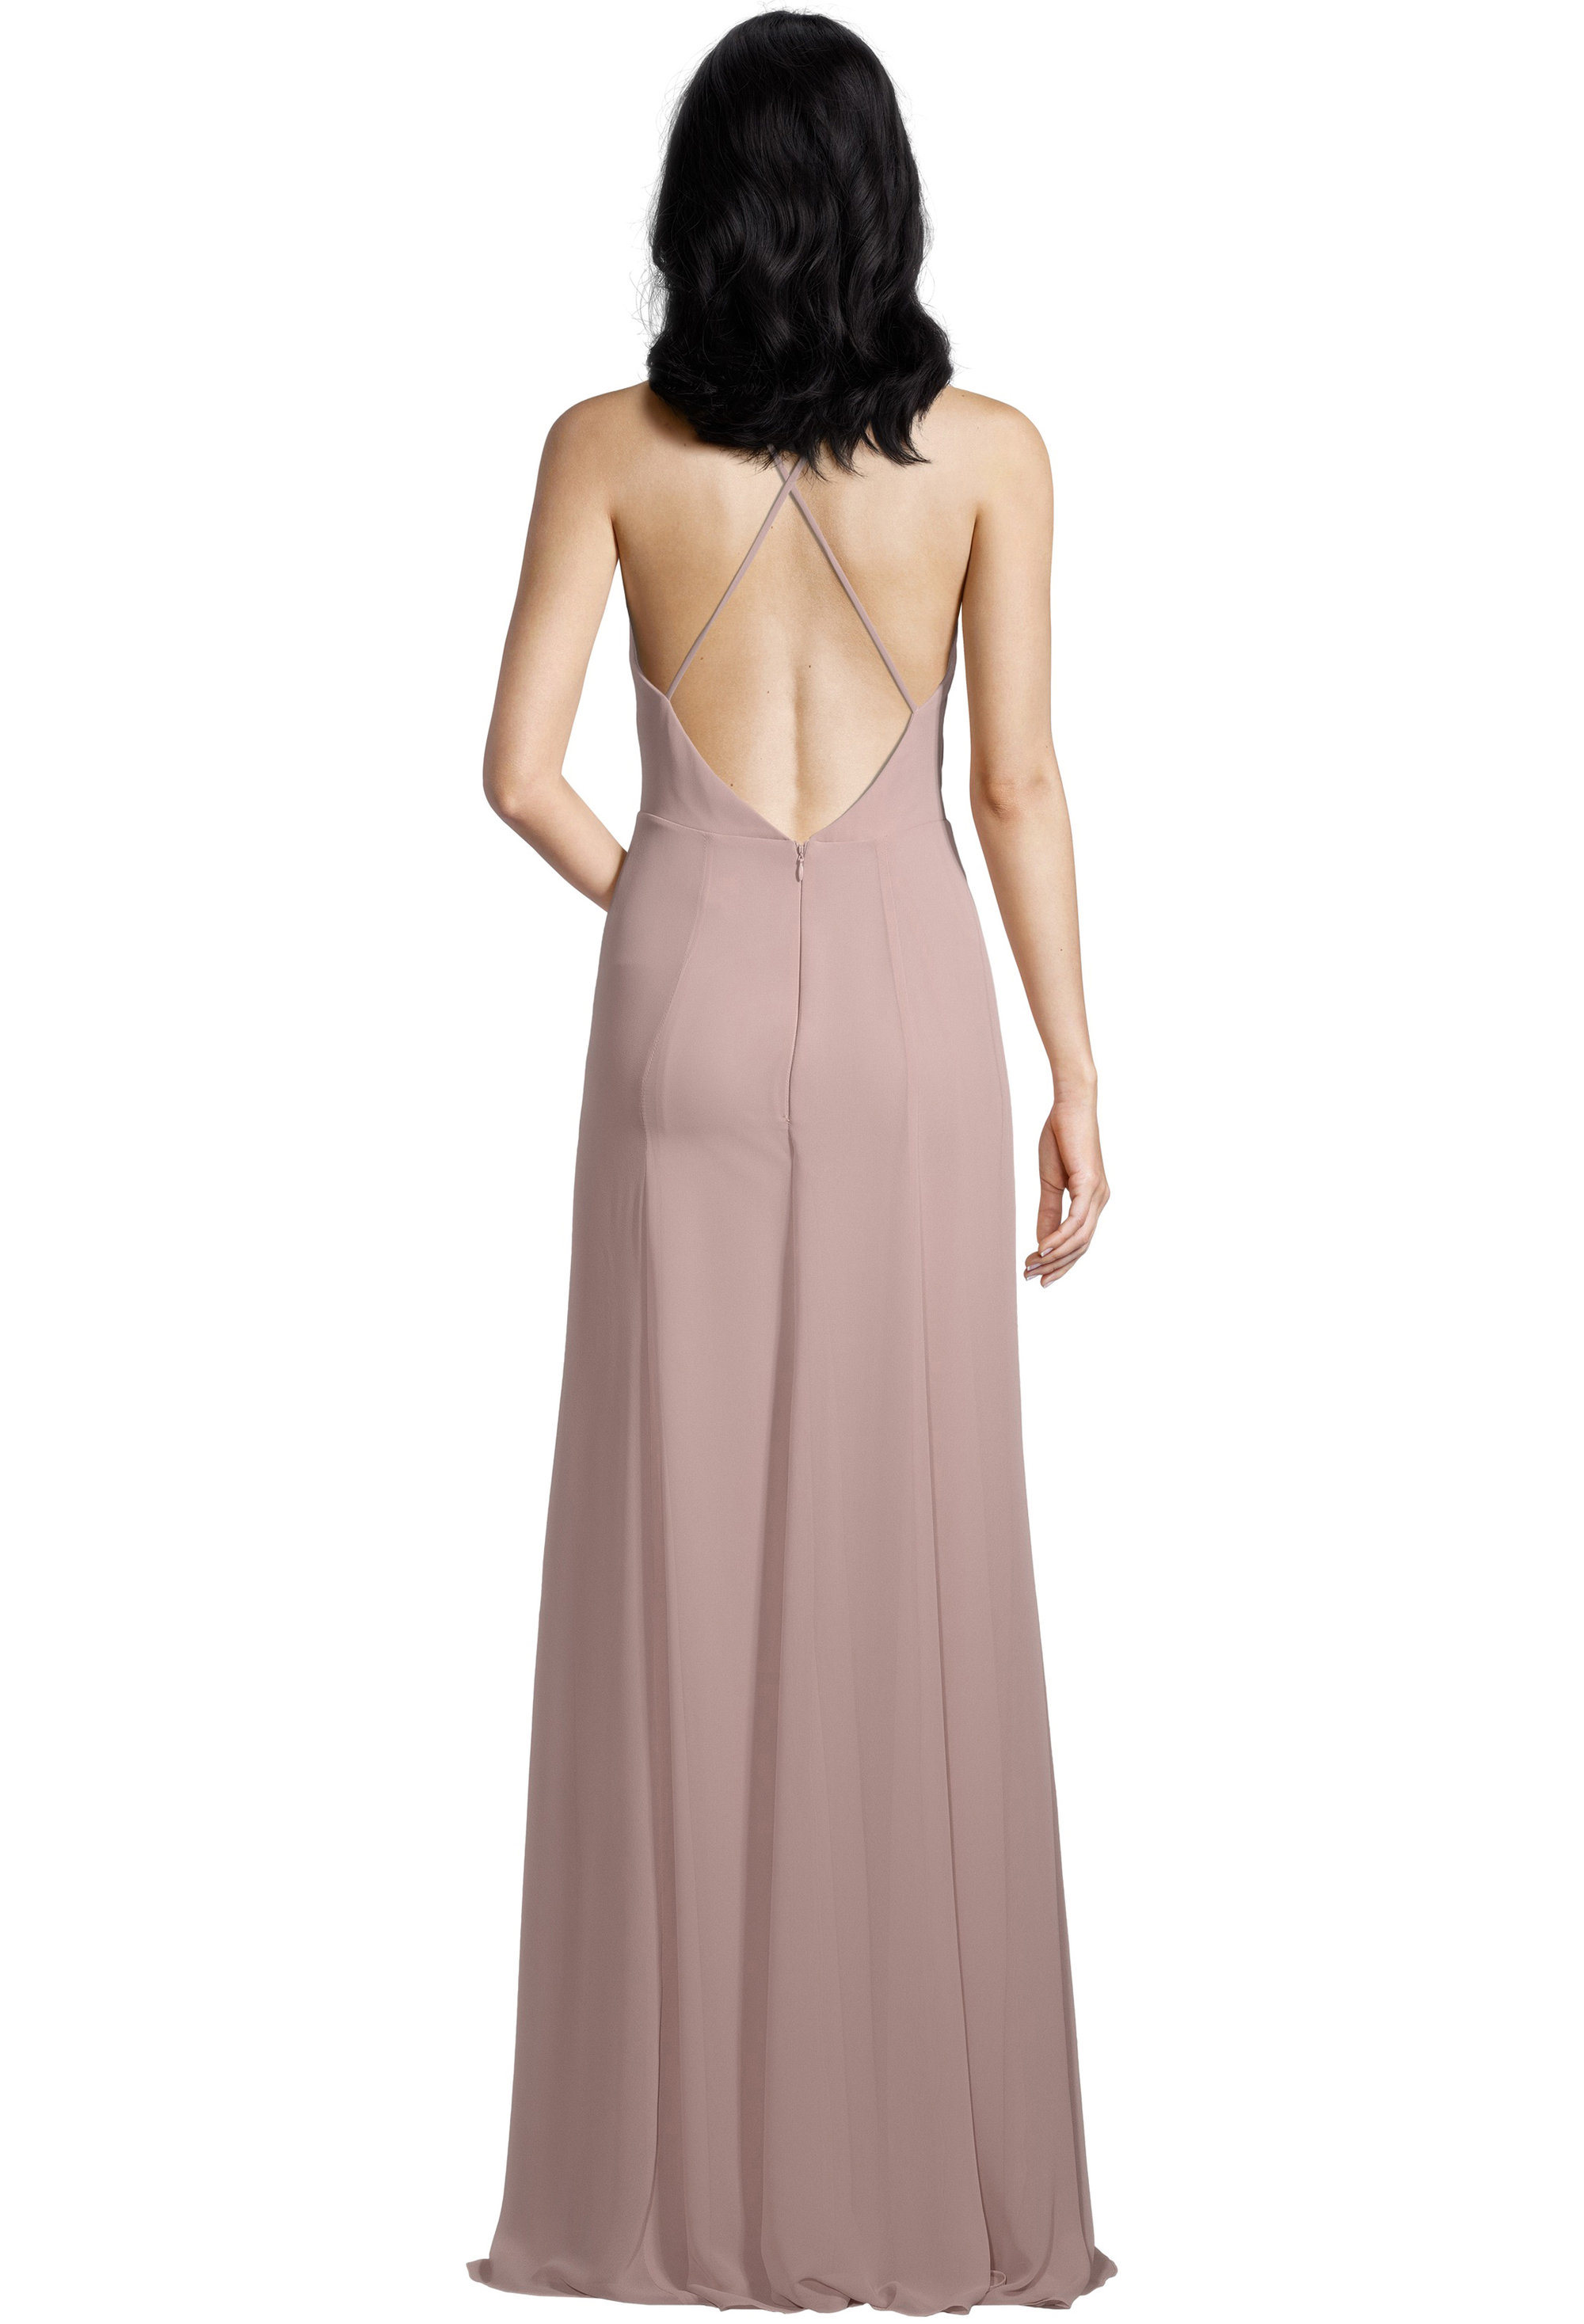 Bill Levkoff FROST ROSE Chiffon V-neck A-line gown, $99.00 Back